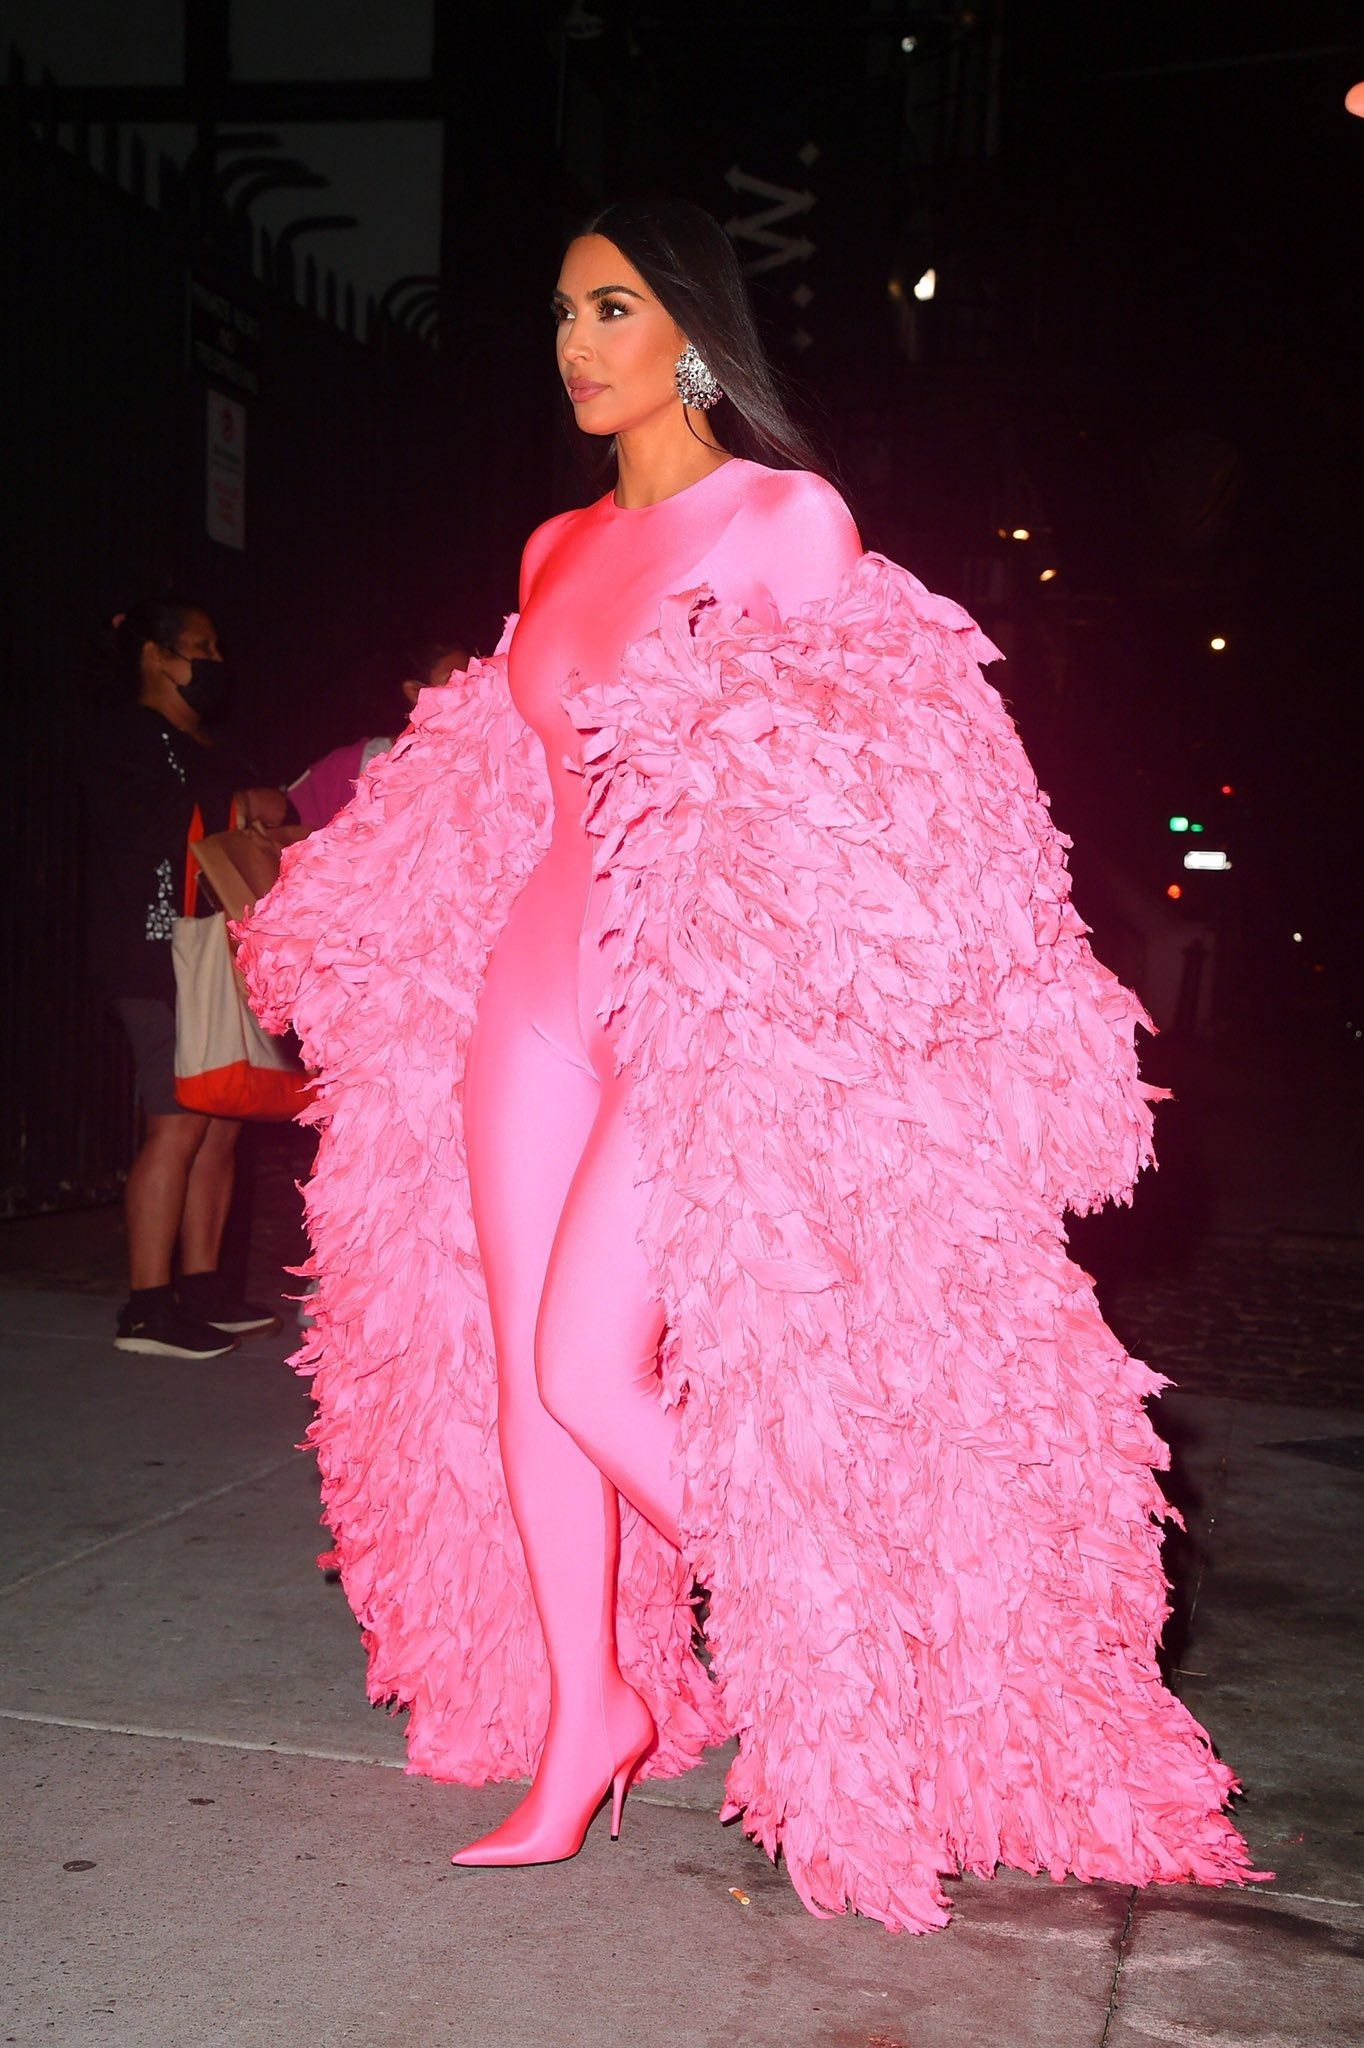 Kim Kardashian sizzles in pink Balenciaga catsuit as she heads to SNL Afterparty